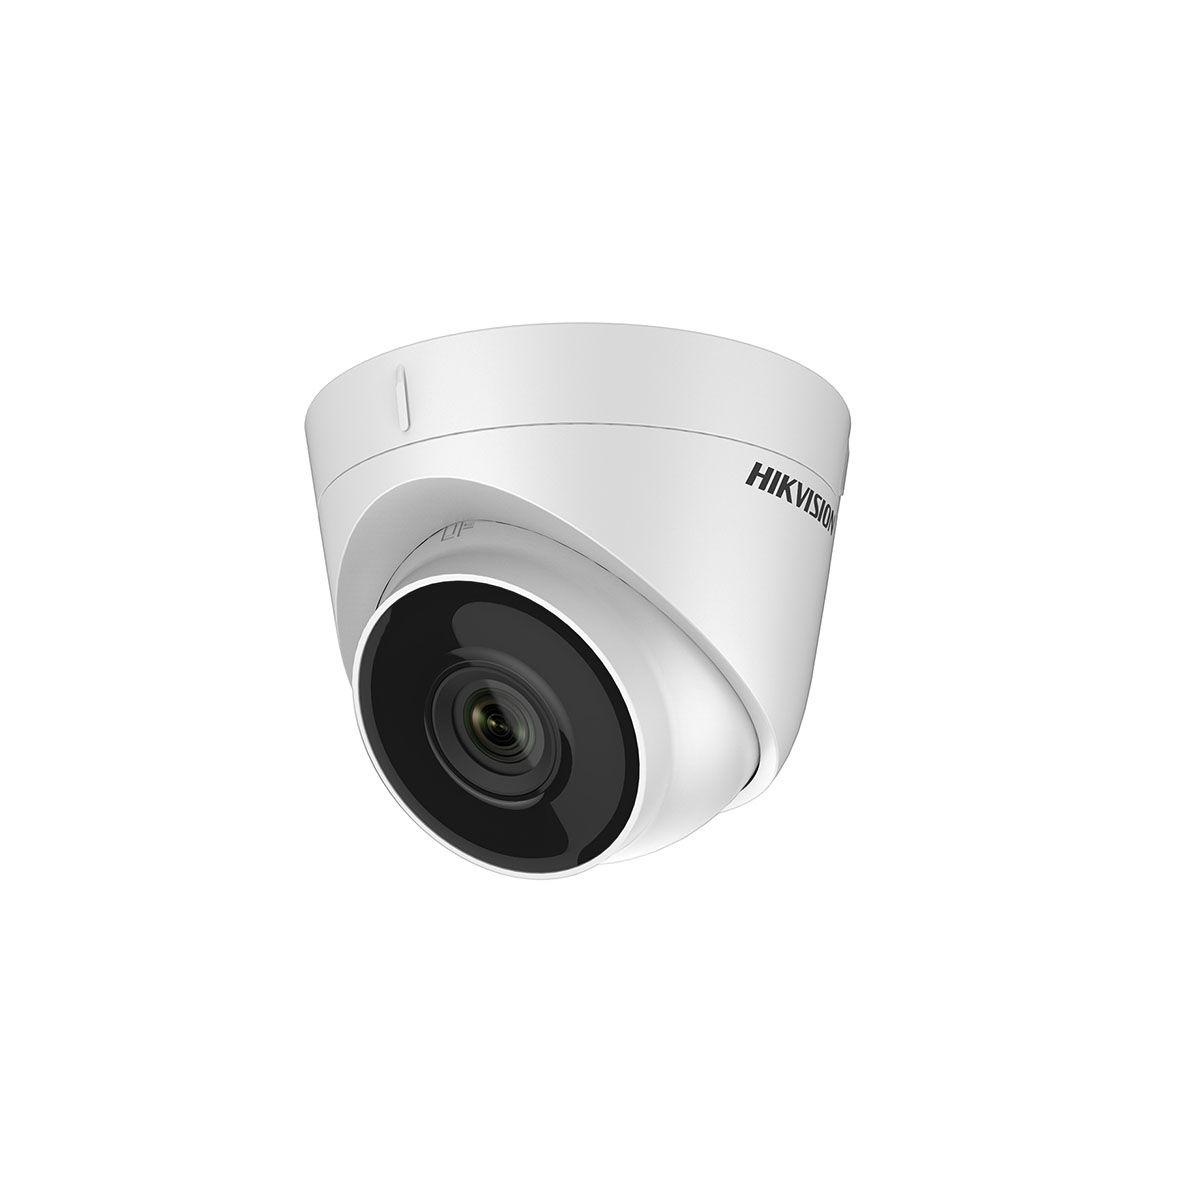 Cámara Hikvision DS-2CD1343G0-I IP Tipo Domo 4MP